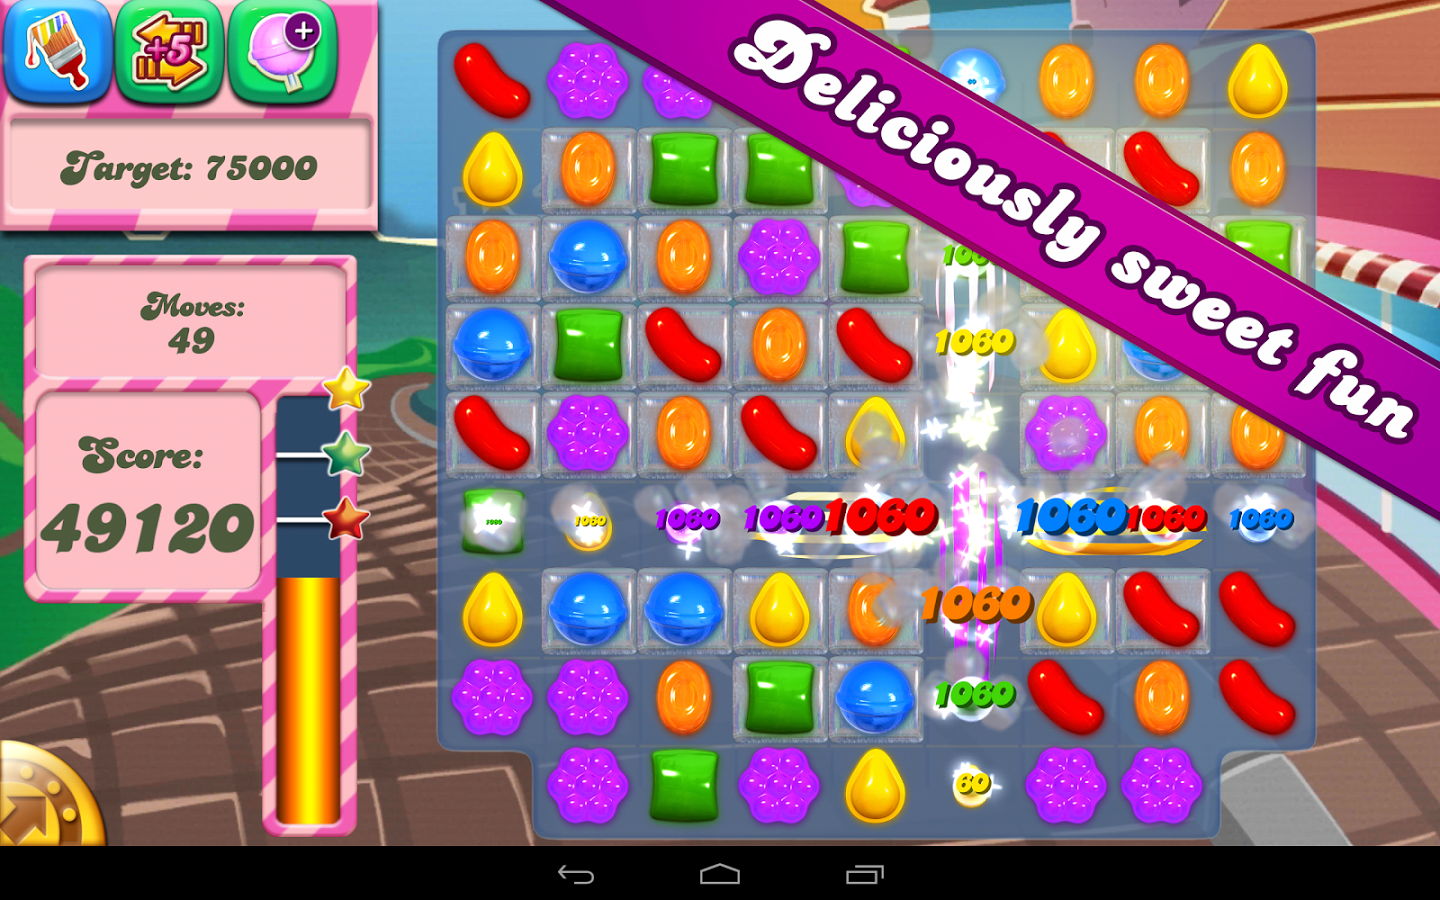 Candy Crush Saga Android Apk Oyun resimi 8